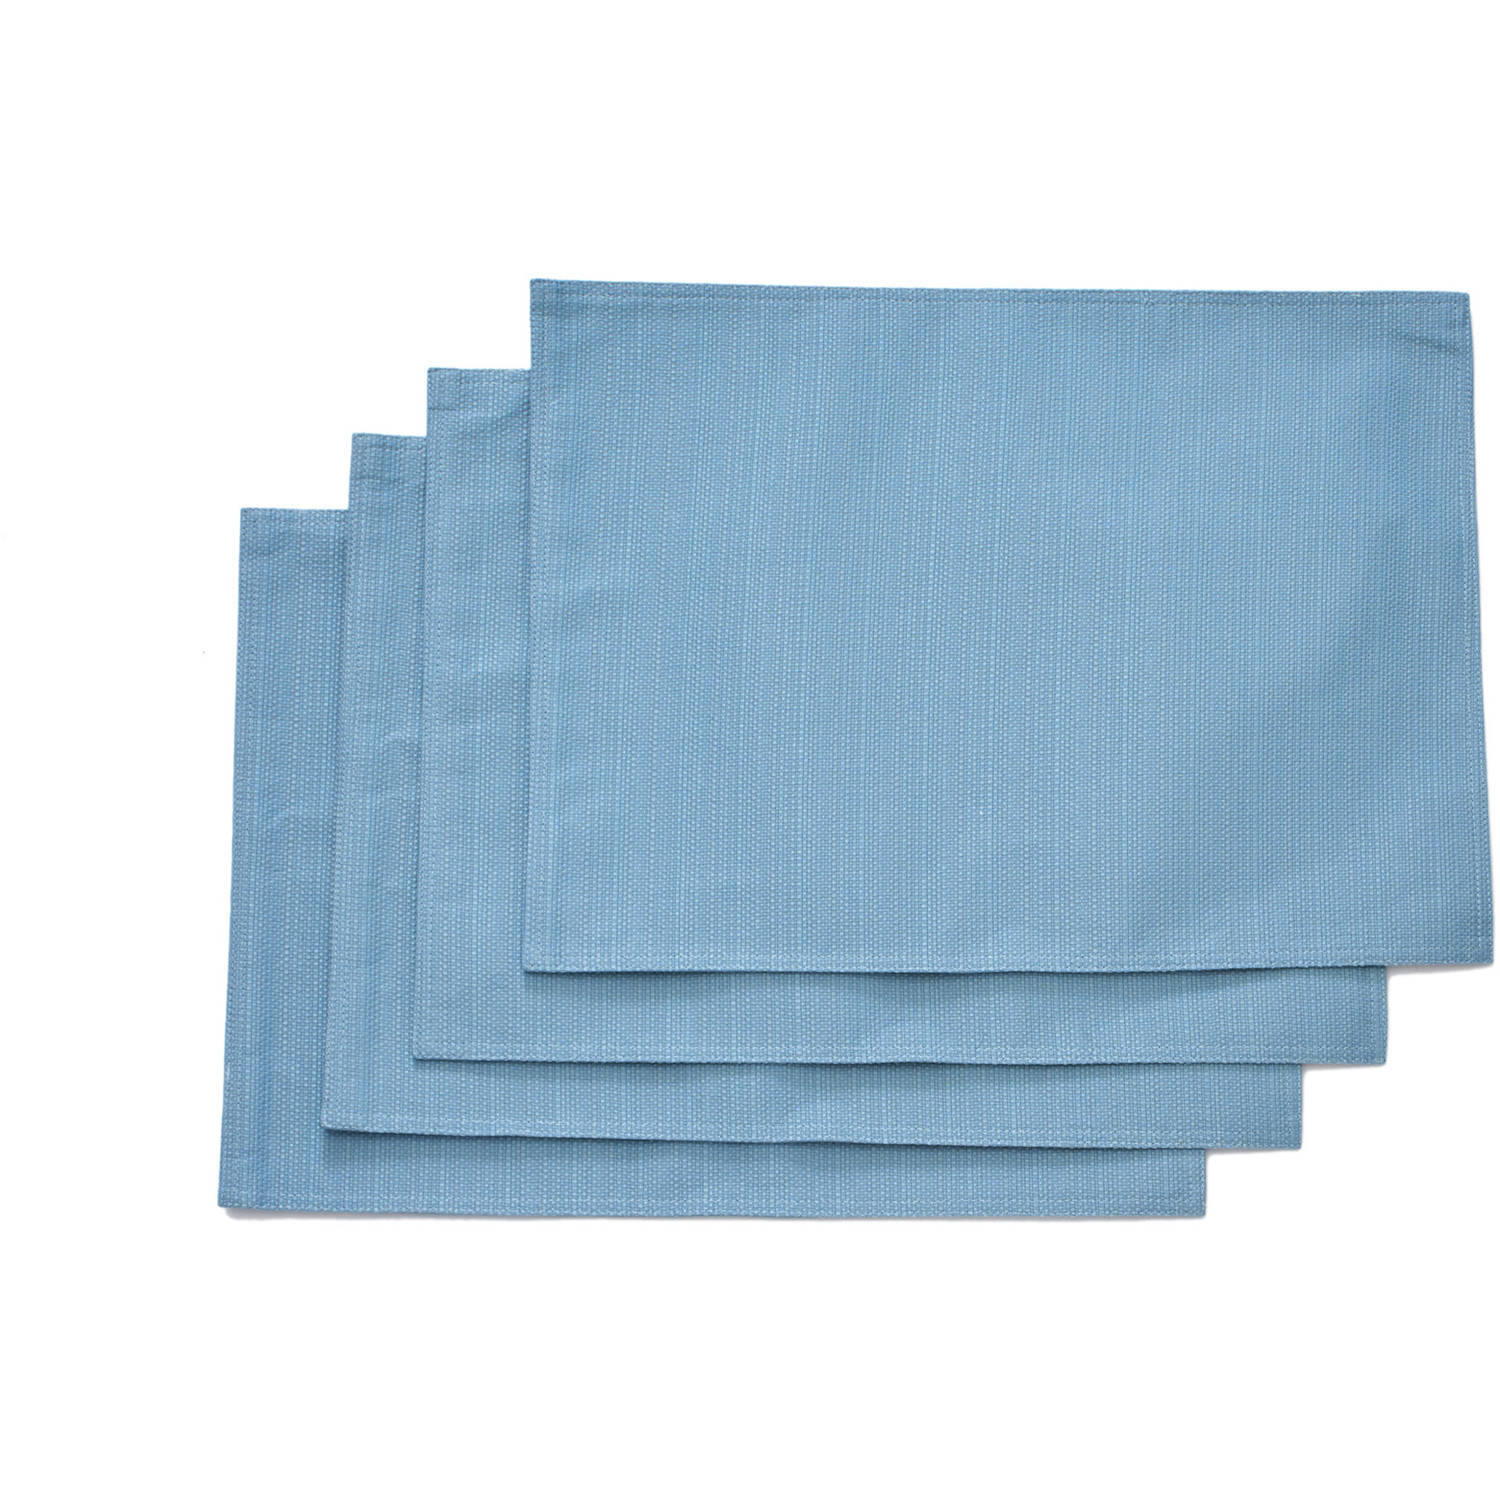 Better Homes and Garden Teal Silk Placemat, Set of 4 by TOWN AND COUNTRY LIVING